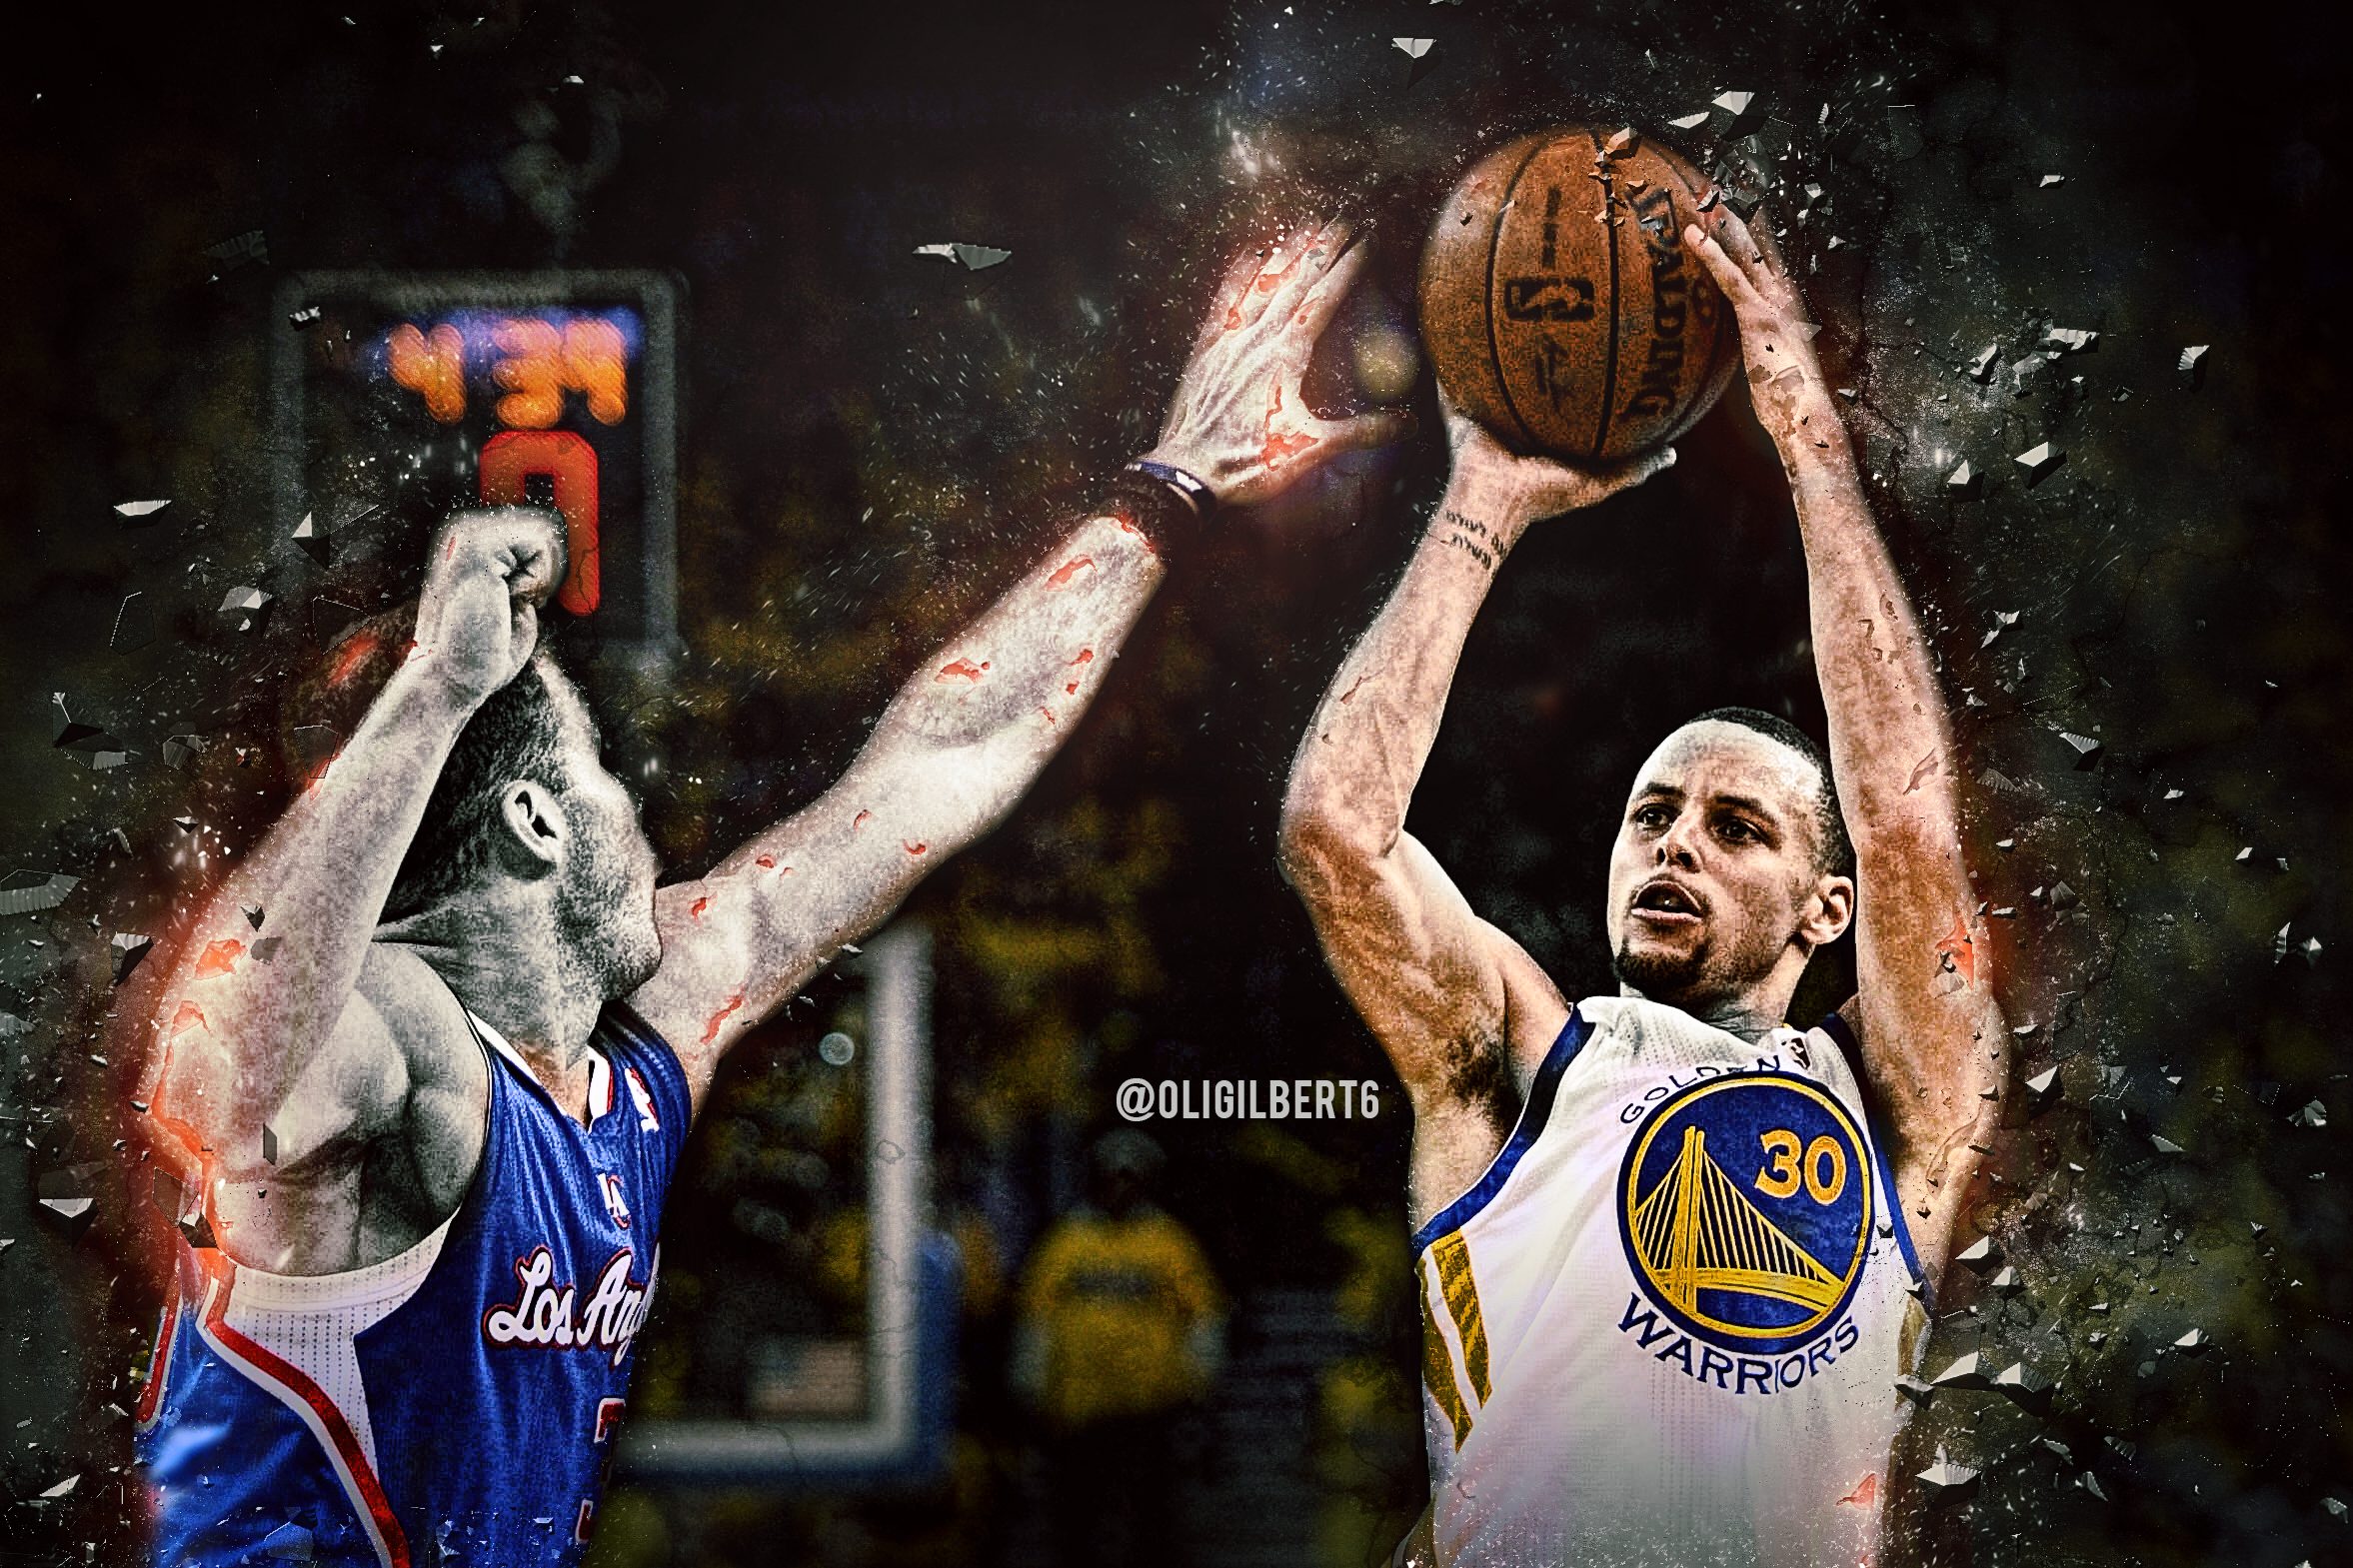 Top Stephen Curry Wallpaper 2015 Wallpapers 2354x1569